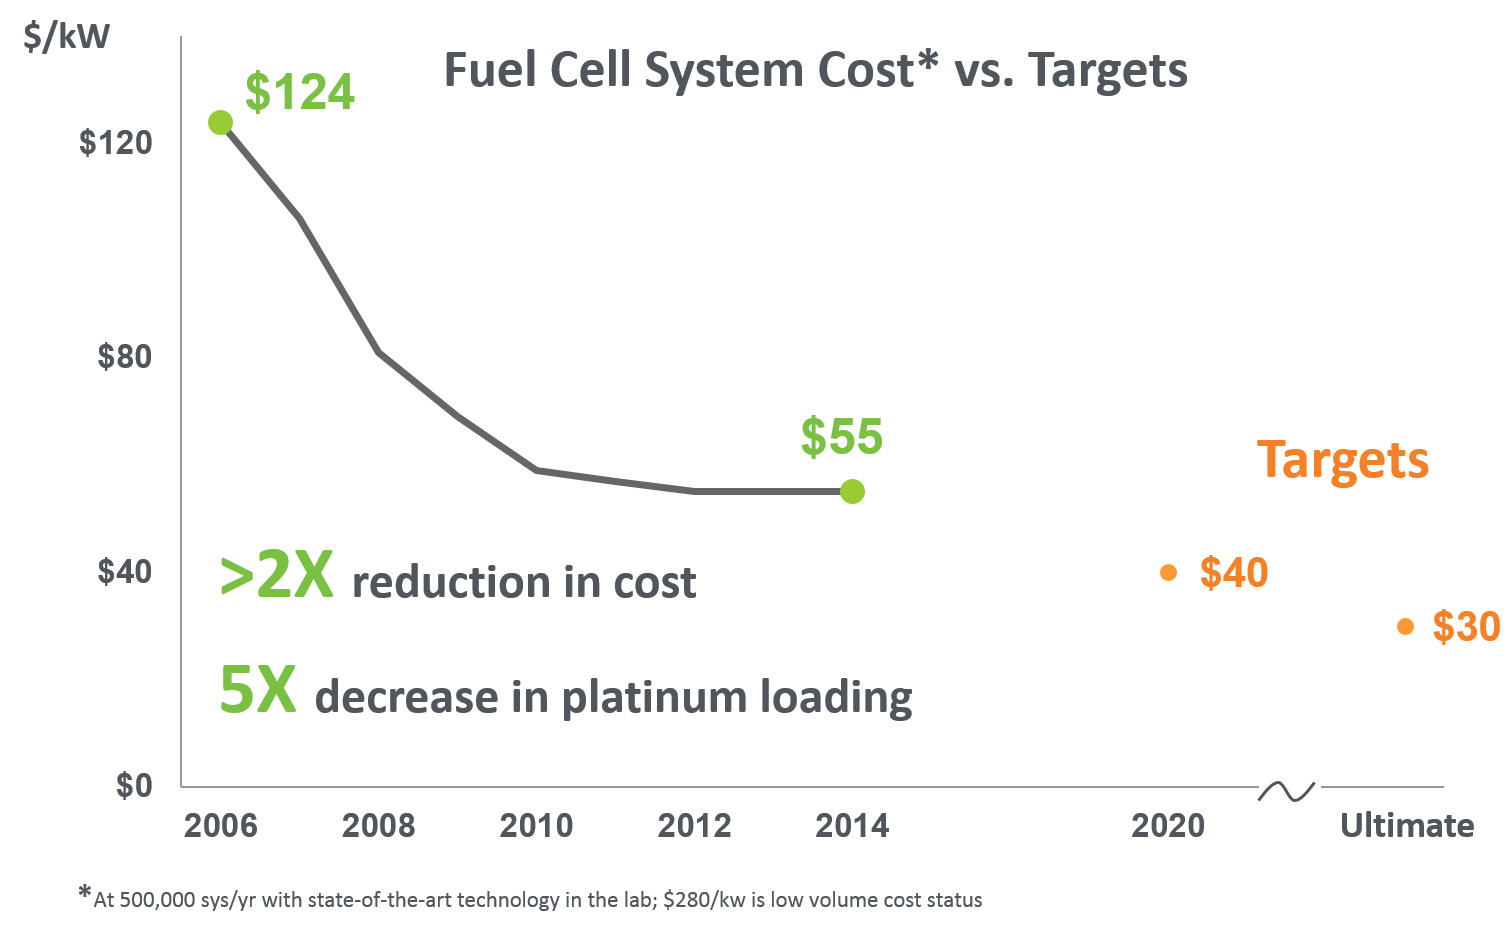 Chart showing progress in reducing fuel cell system cost from $124/kW in 2006 to $55/kW in 2014. It also shows the $40/kW target for 2020 and an ultimate target of $30/kW